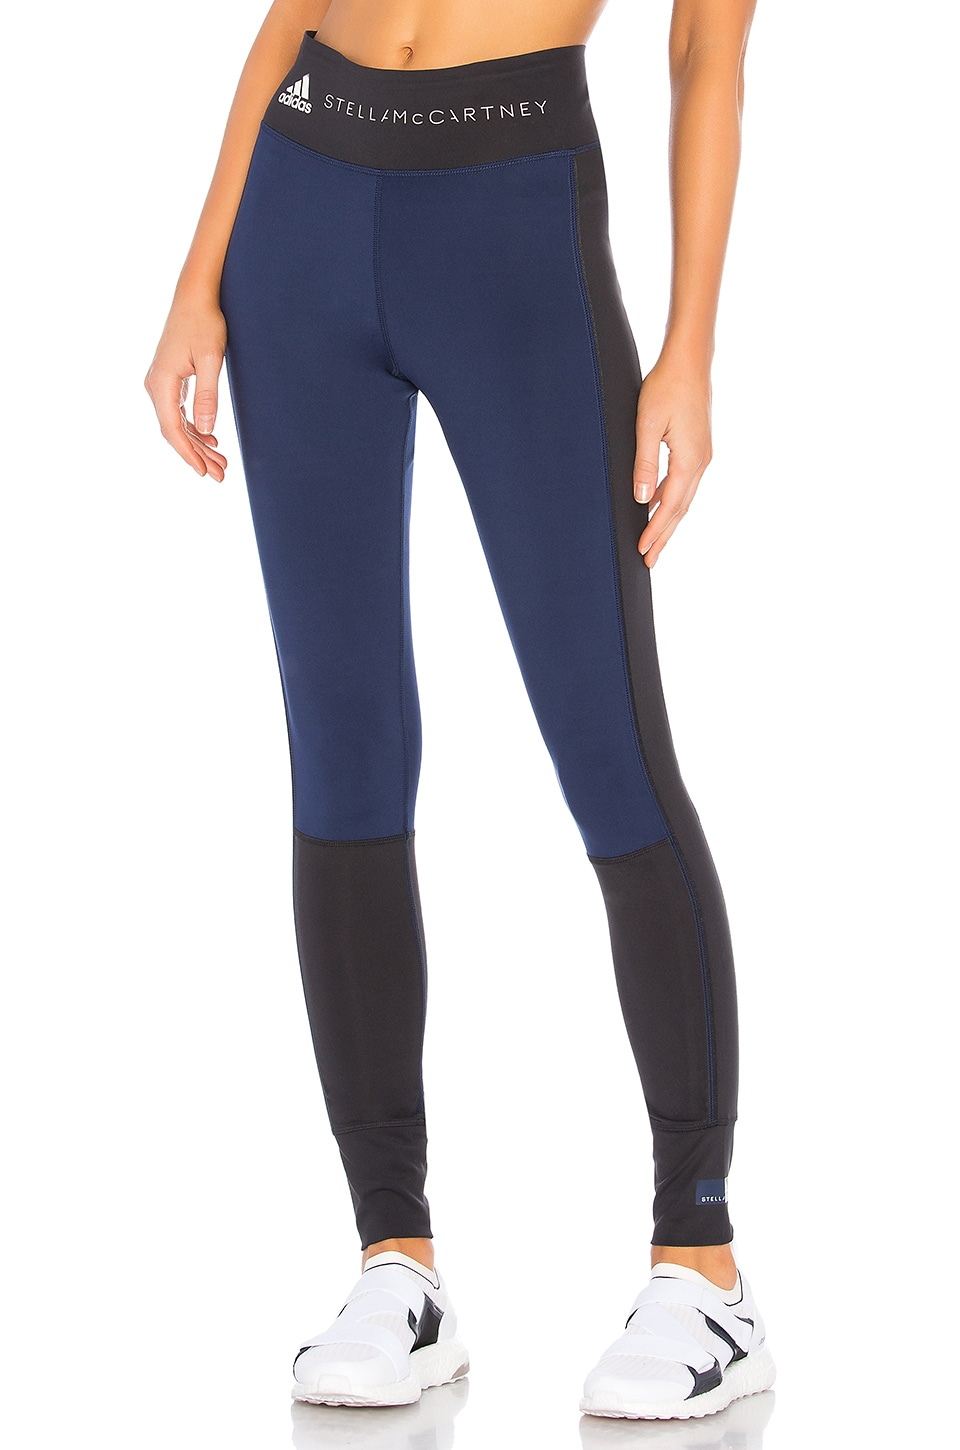 adidas by Stella McCartney Yoga Comfort Legging in Black & Night Indigo